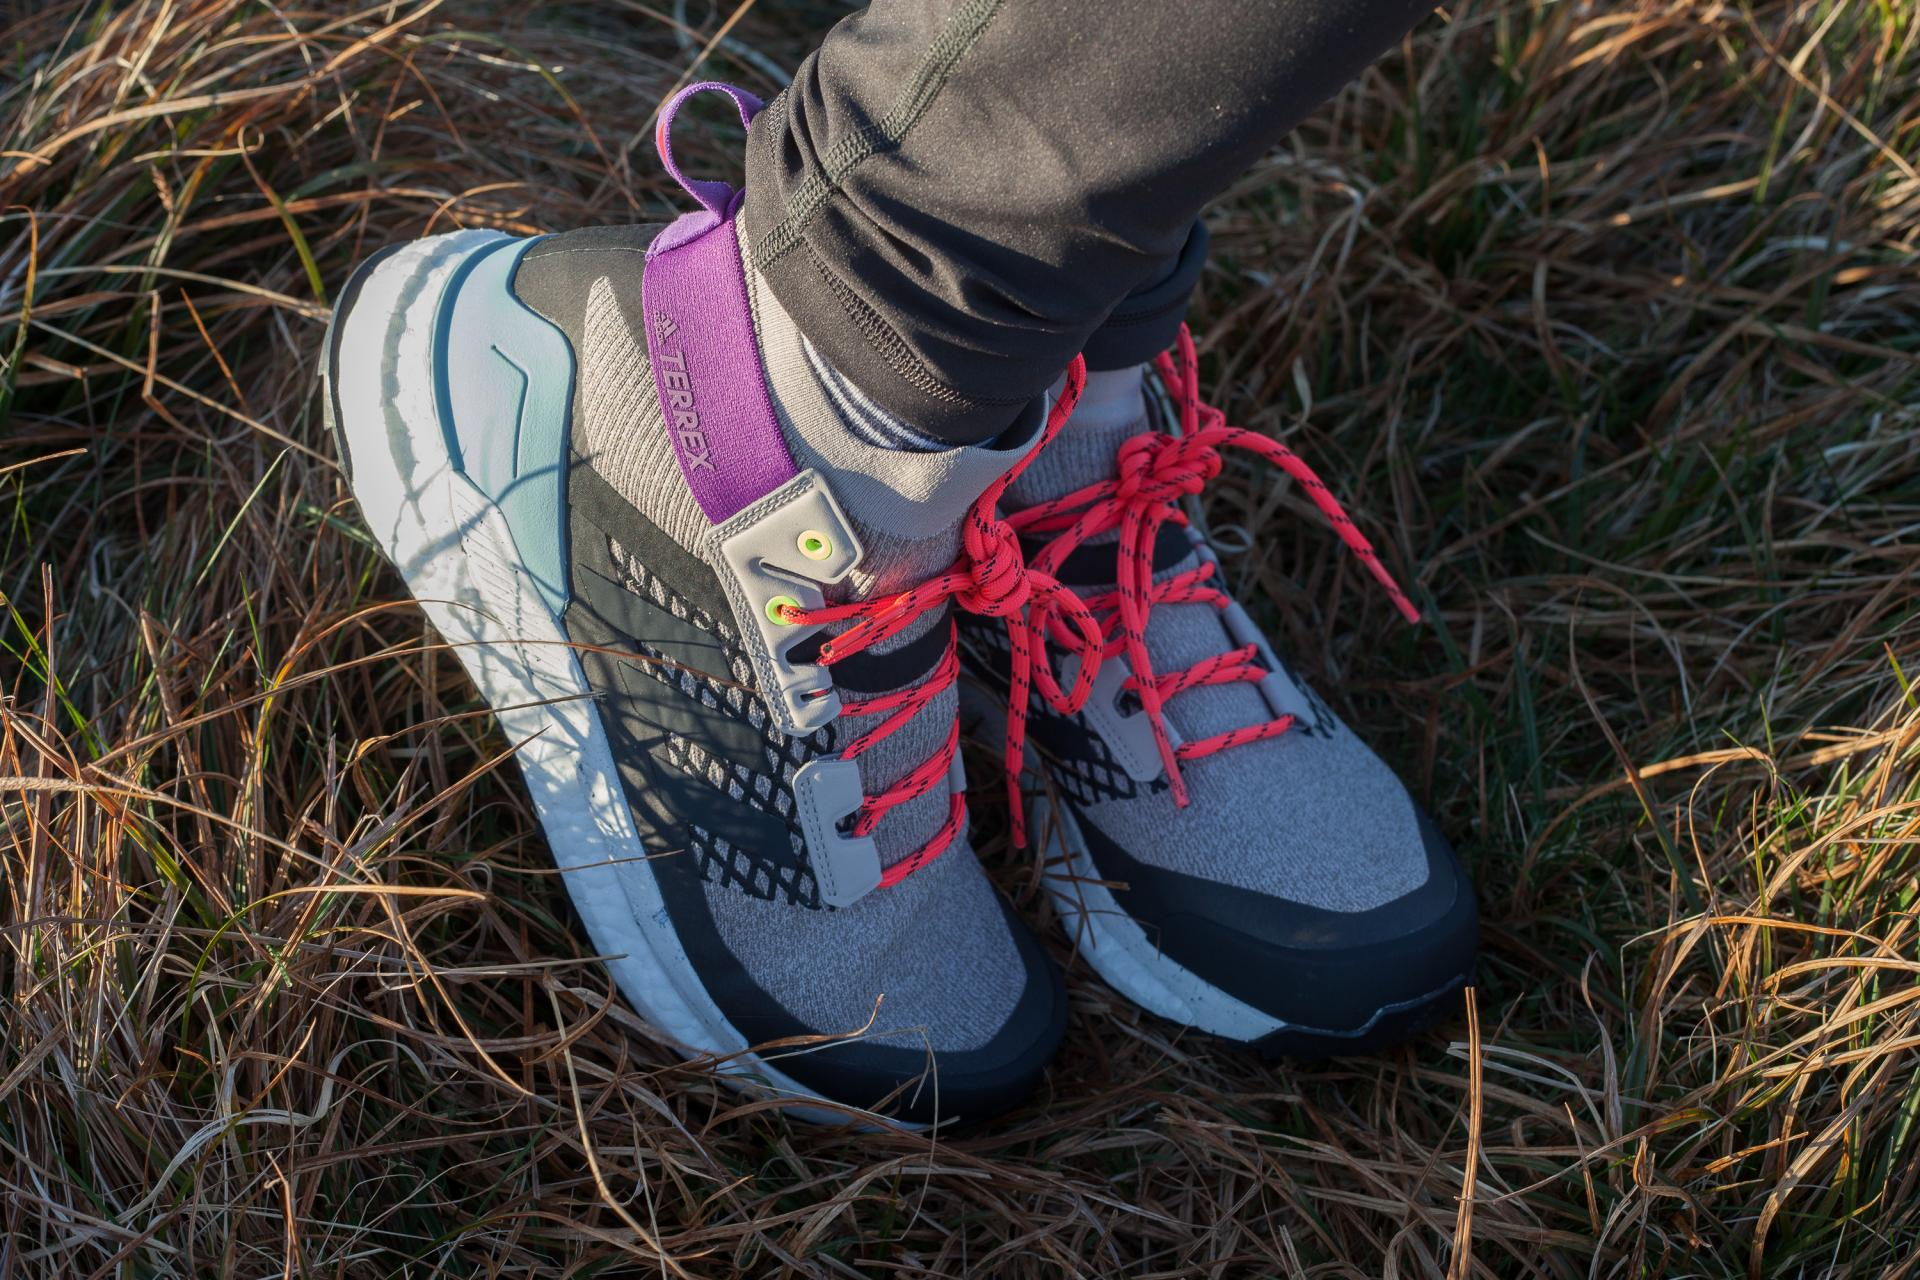 Adidas Free Hiker Boot review